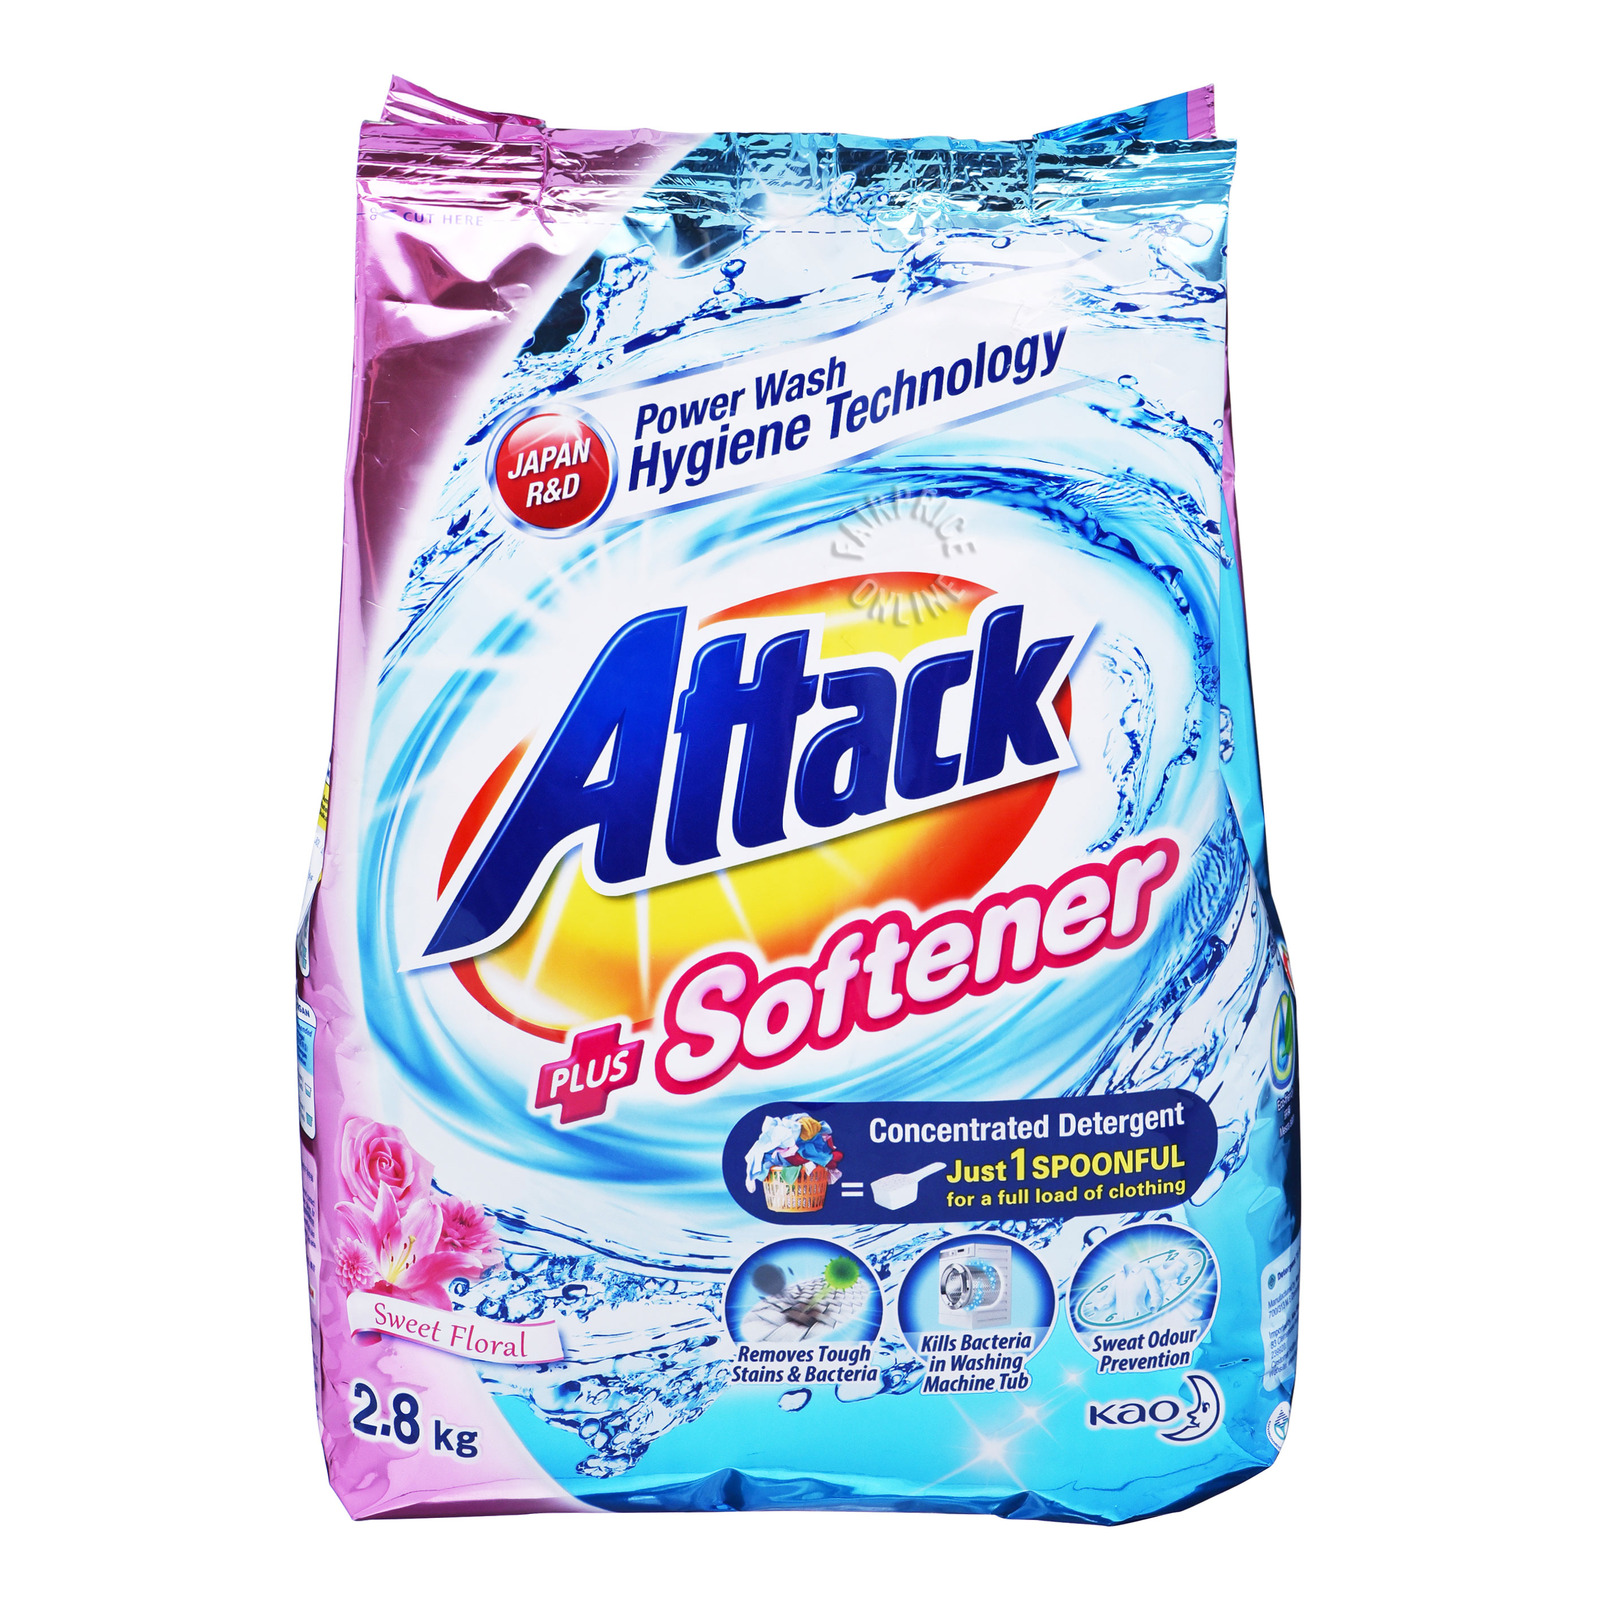 Attack Detergent + Softener Sweet Floral Powder Detergent